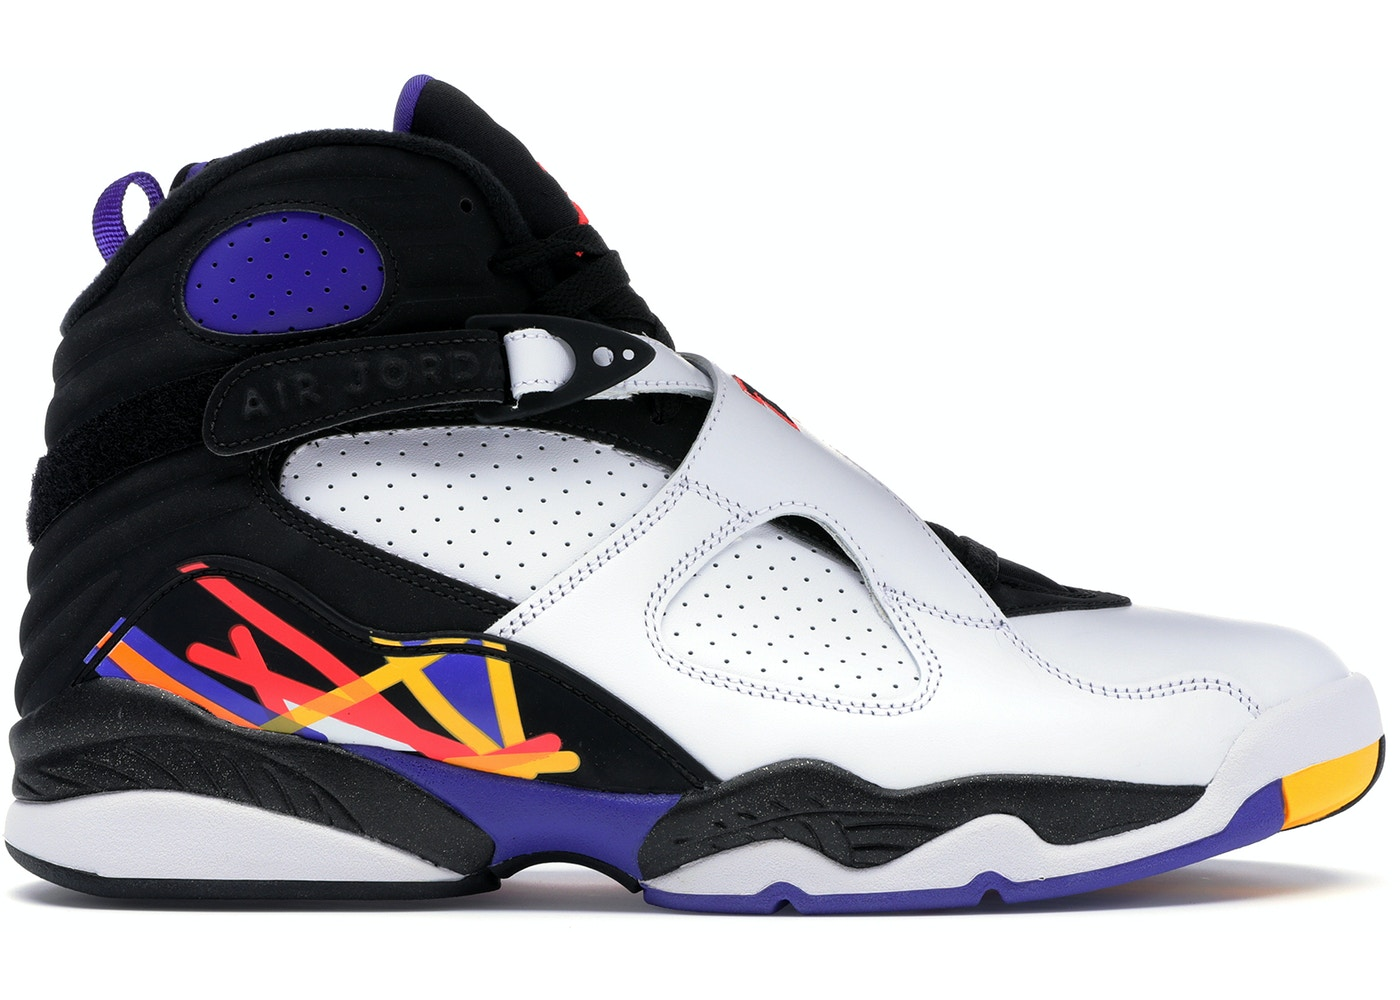 new styles 30190 ddebc Jordan 8 Retro Three Peat - 305381-142